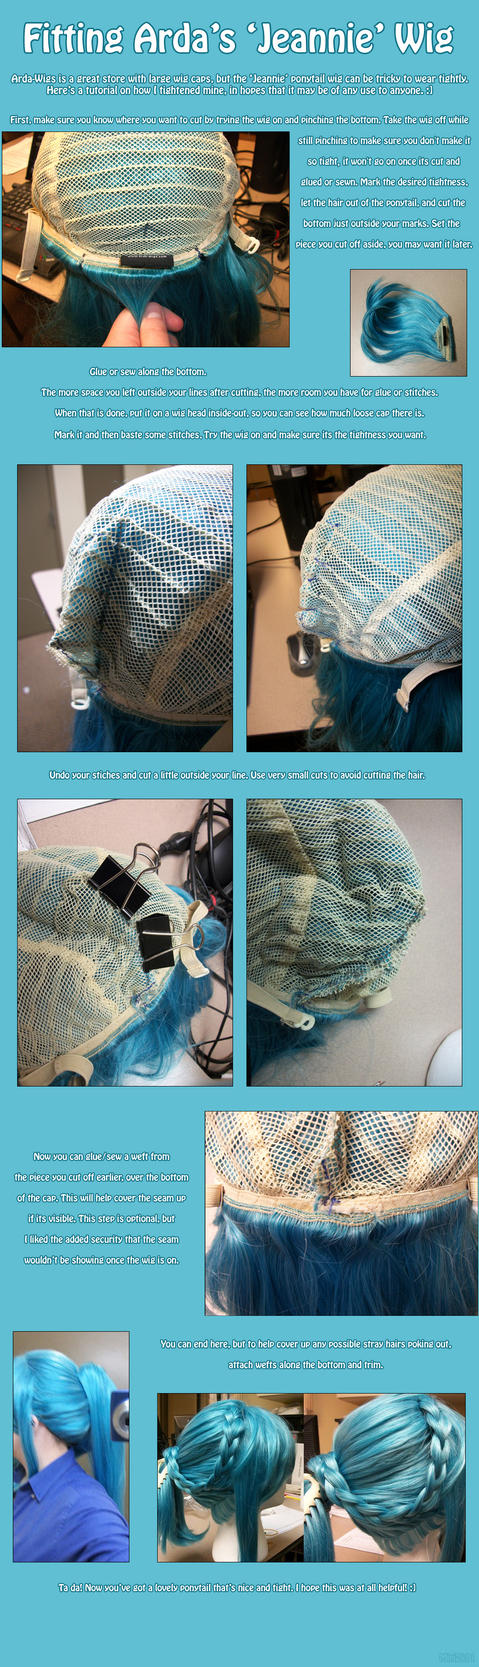 Fitting Arda's Jeannie Wig Tutorial by PrettyKitty